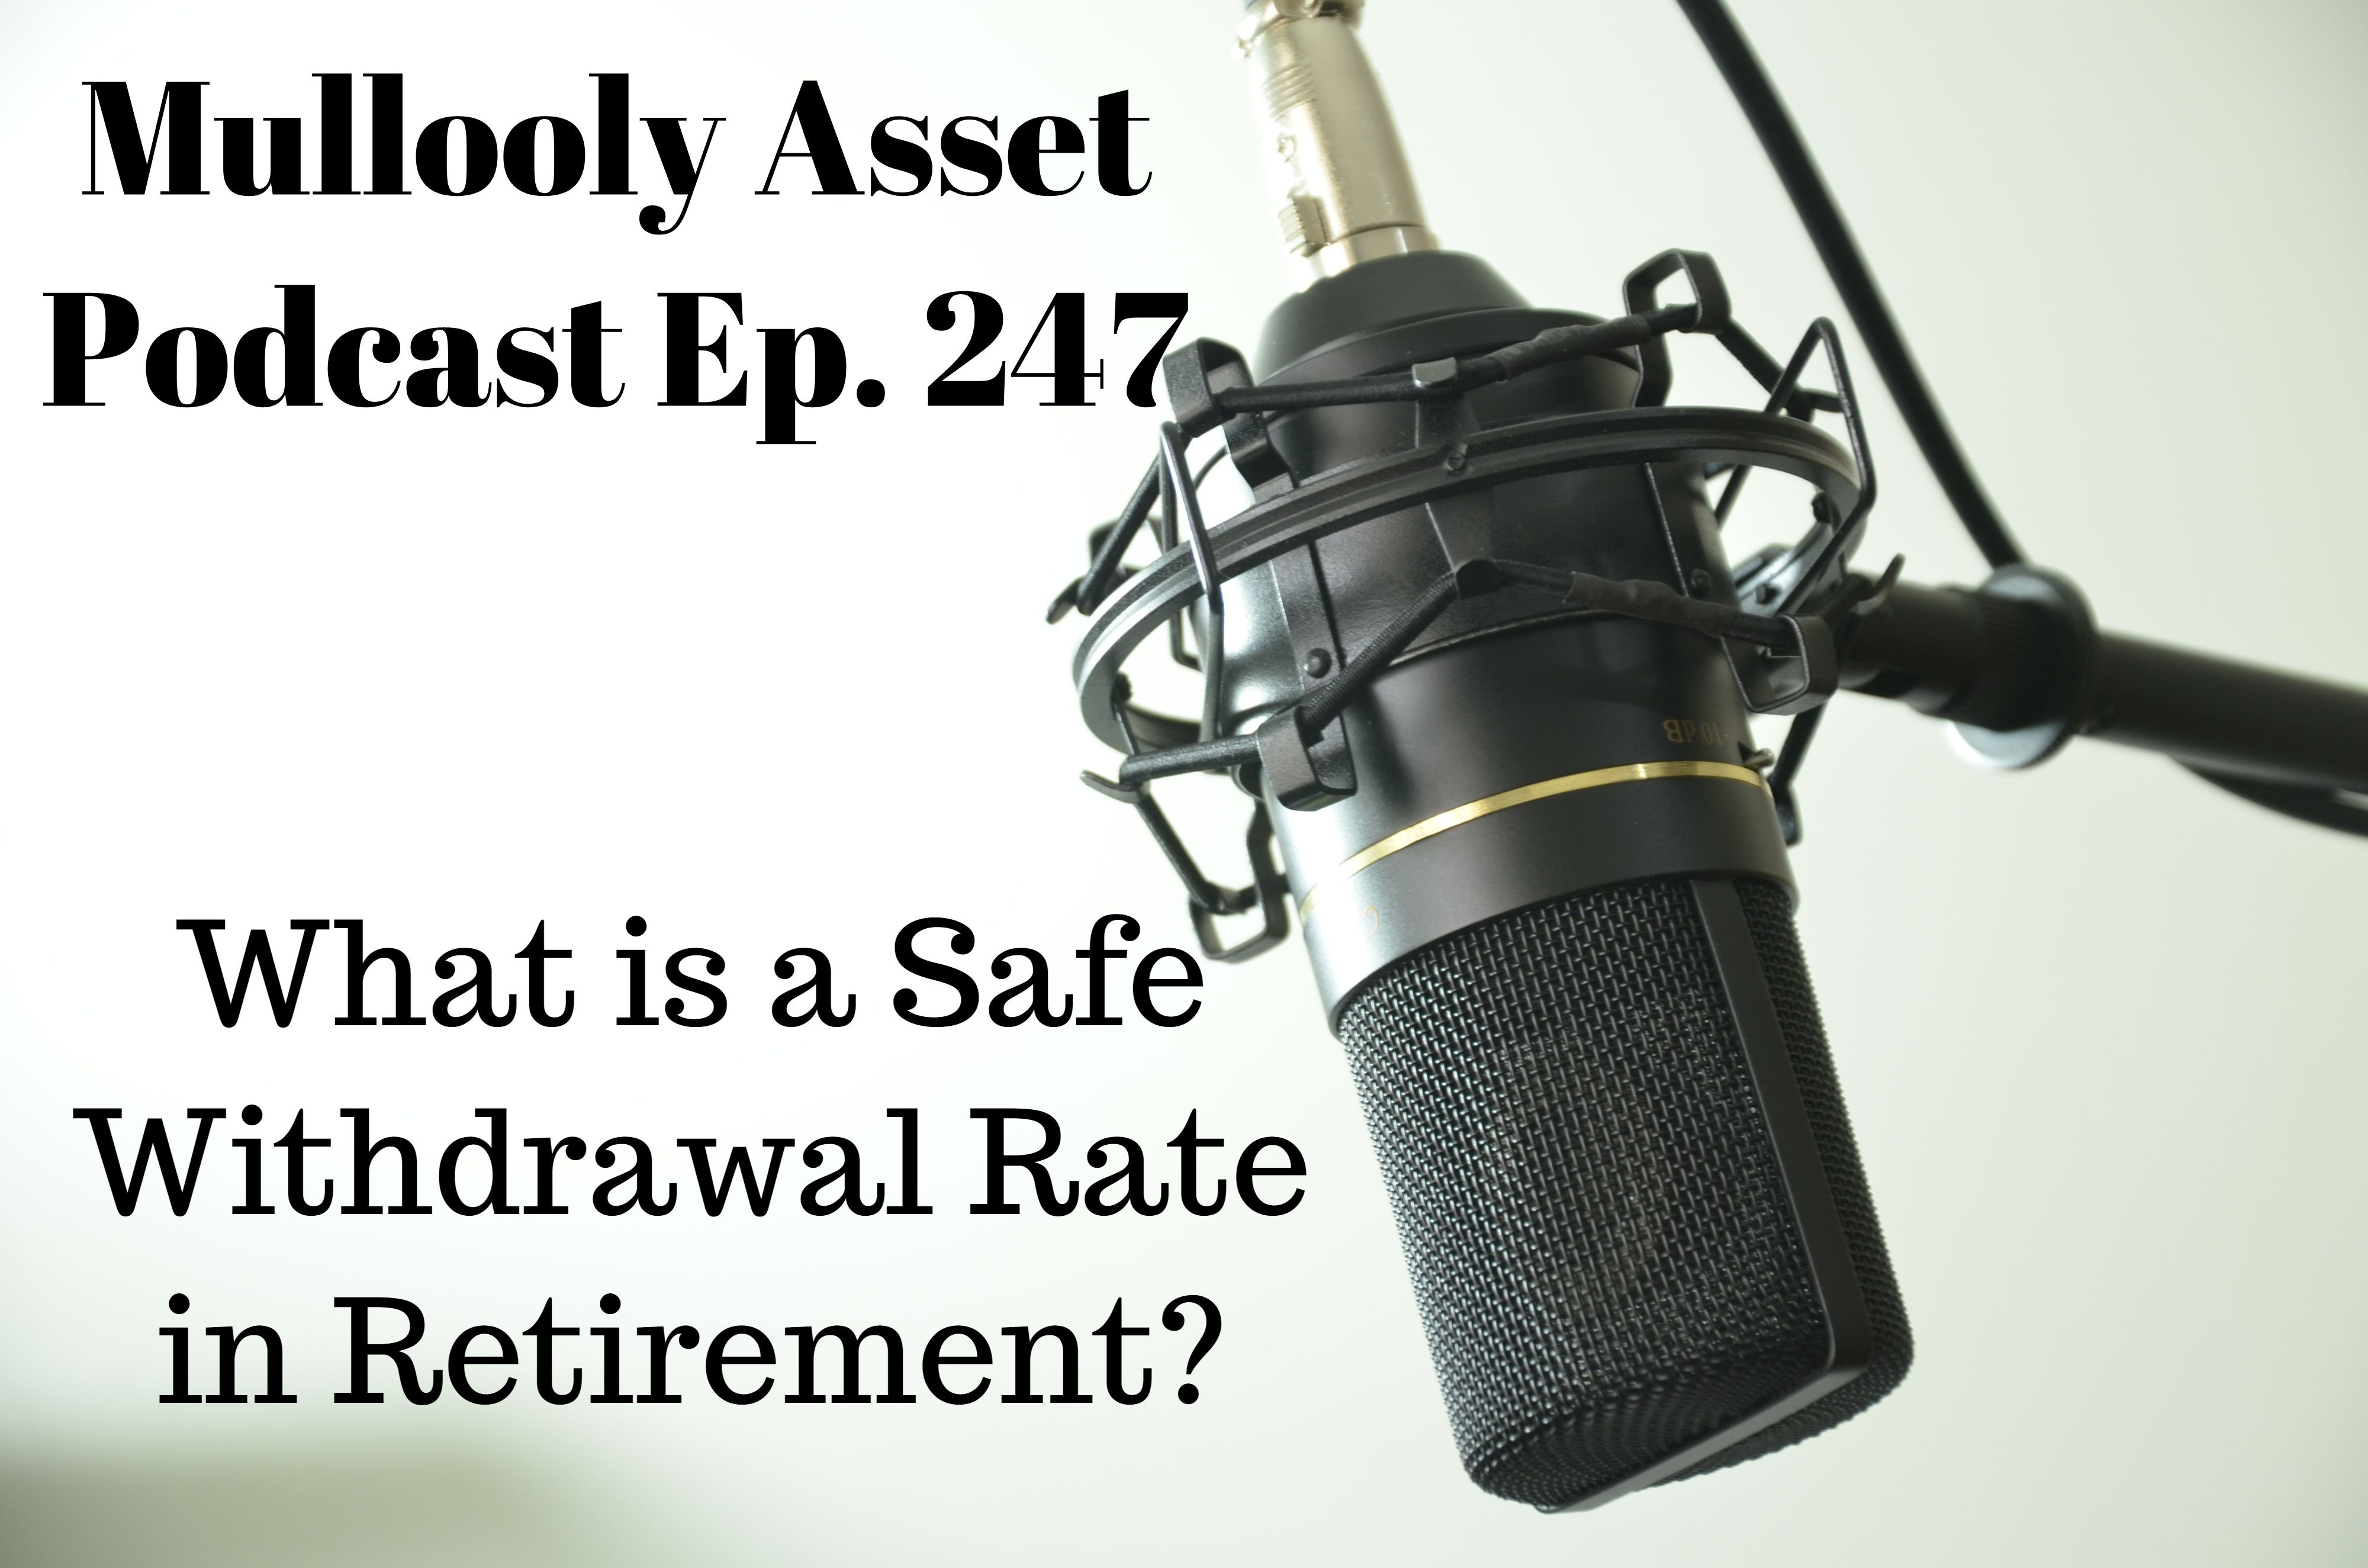 What is a Safe Withdrawal Rate in Retirement?